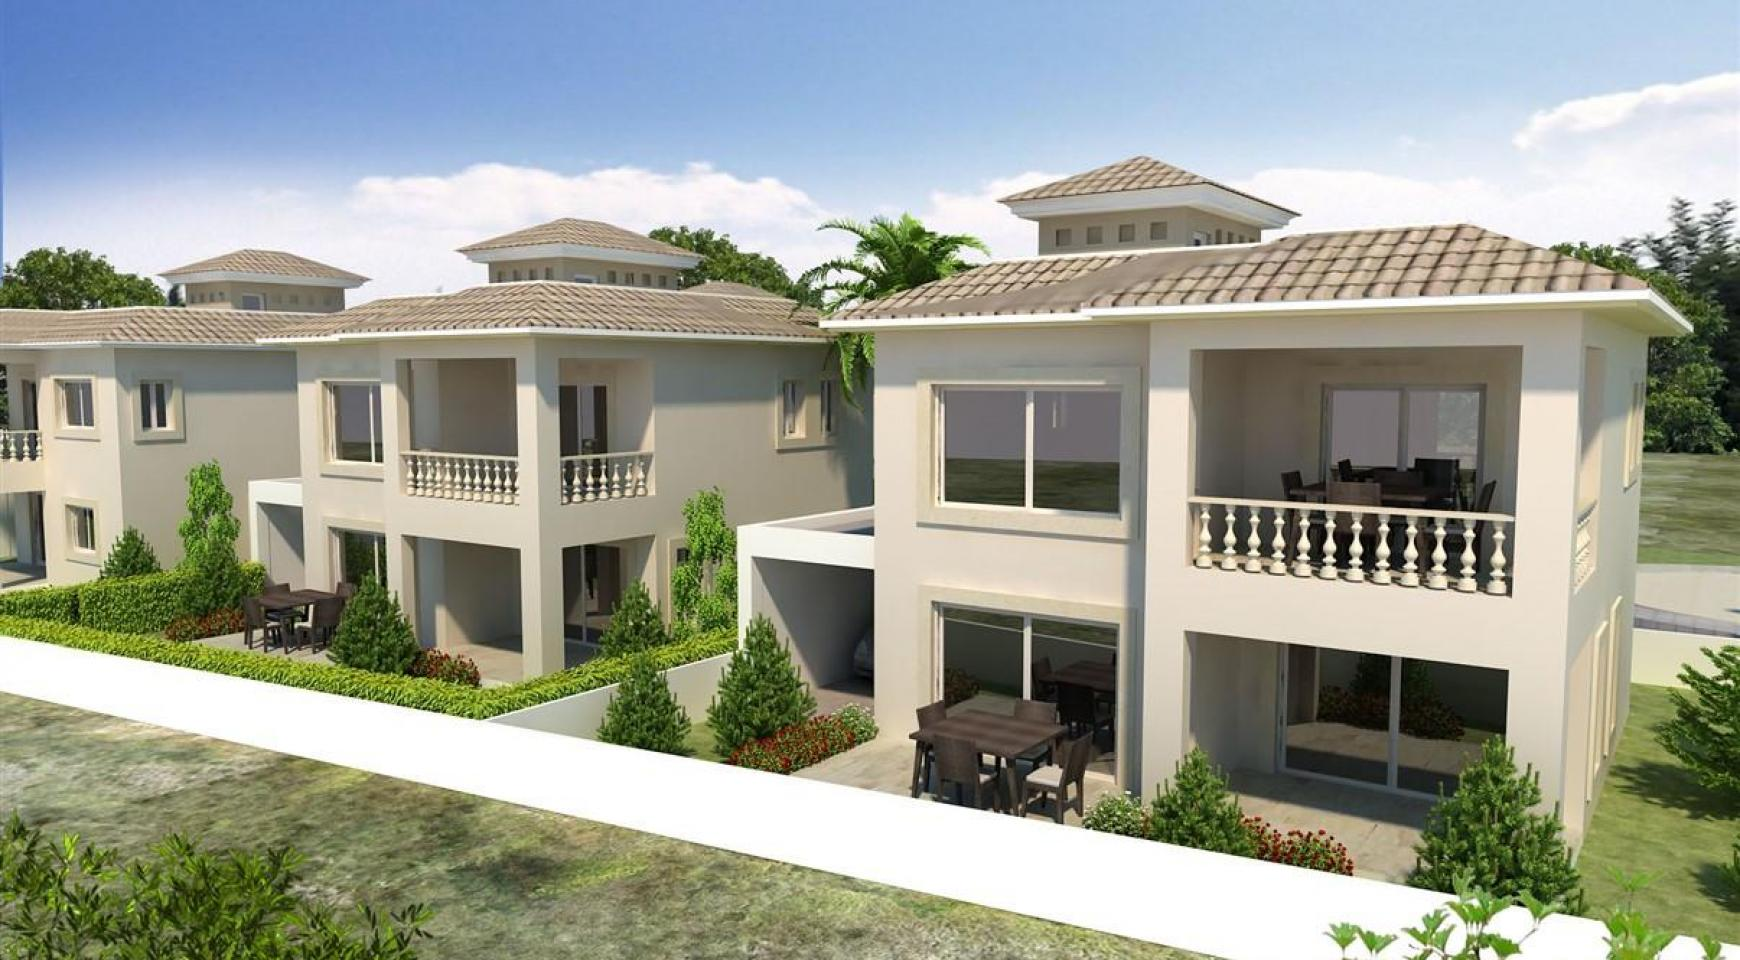 Modern 3 Bedroom Villa in New Project in Paphos - 19